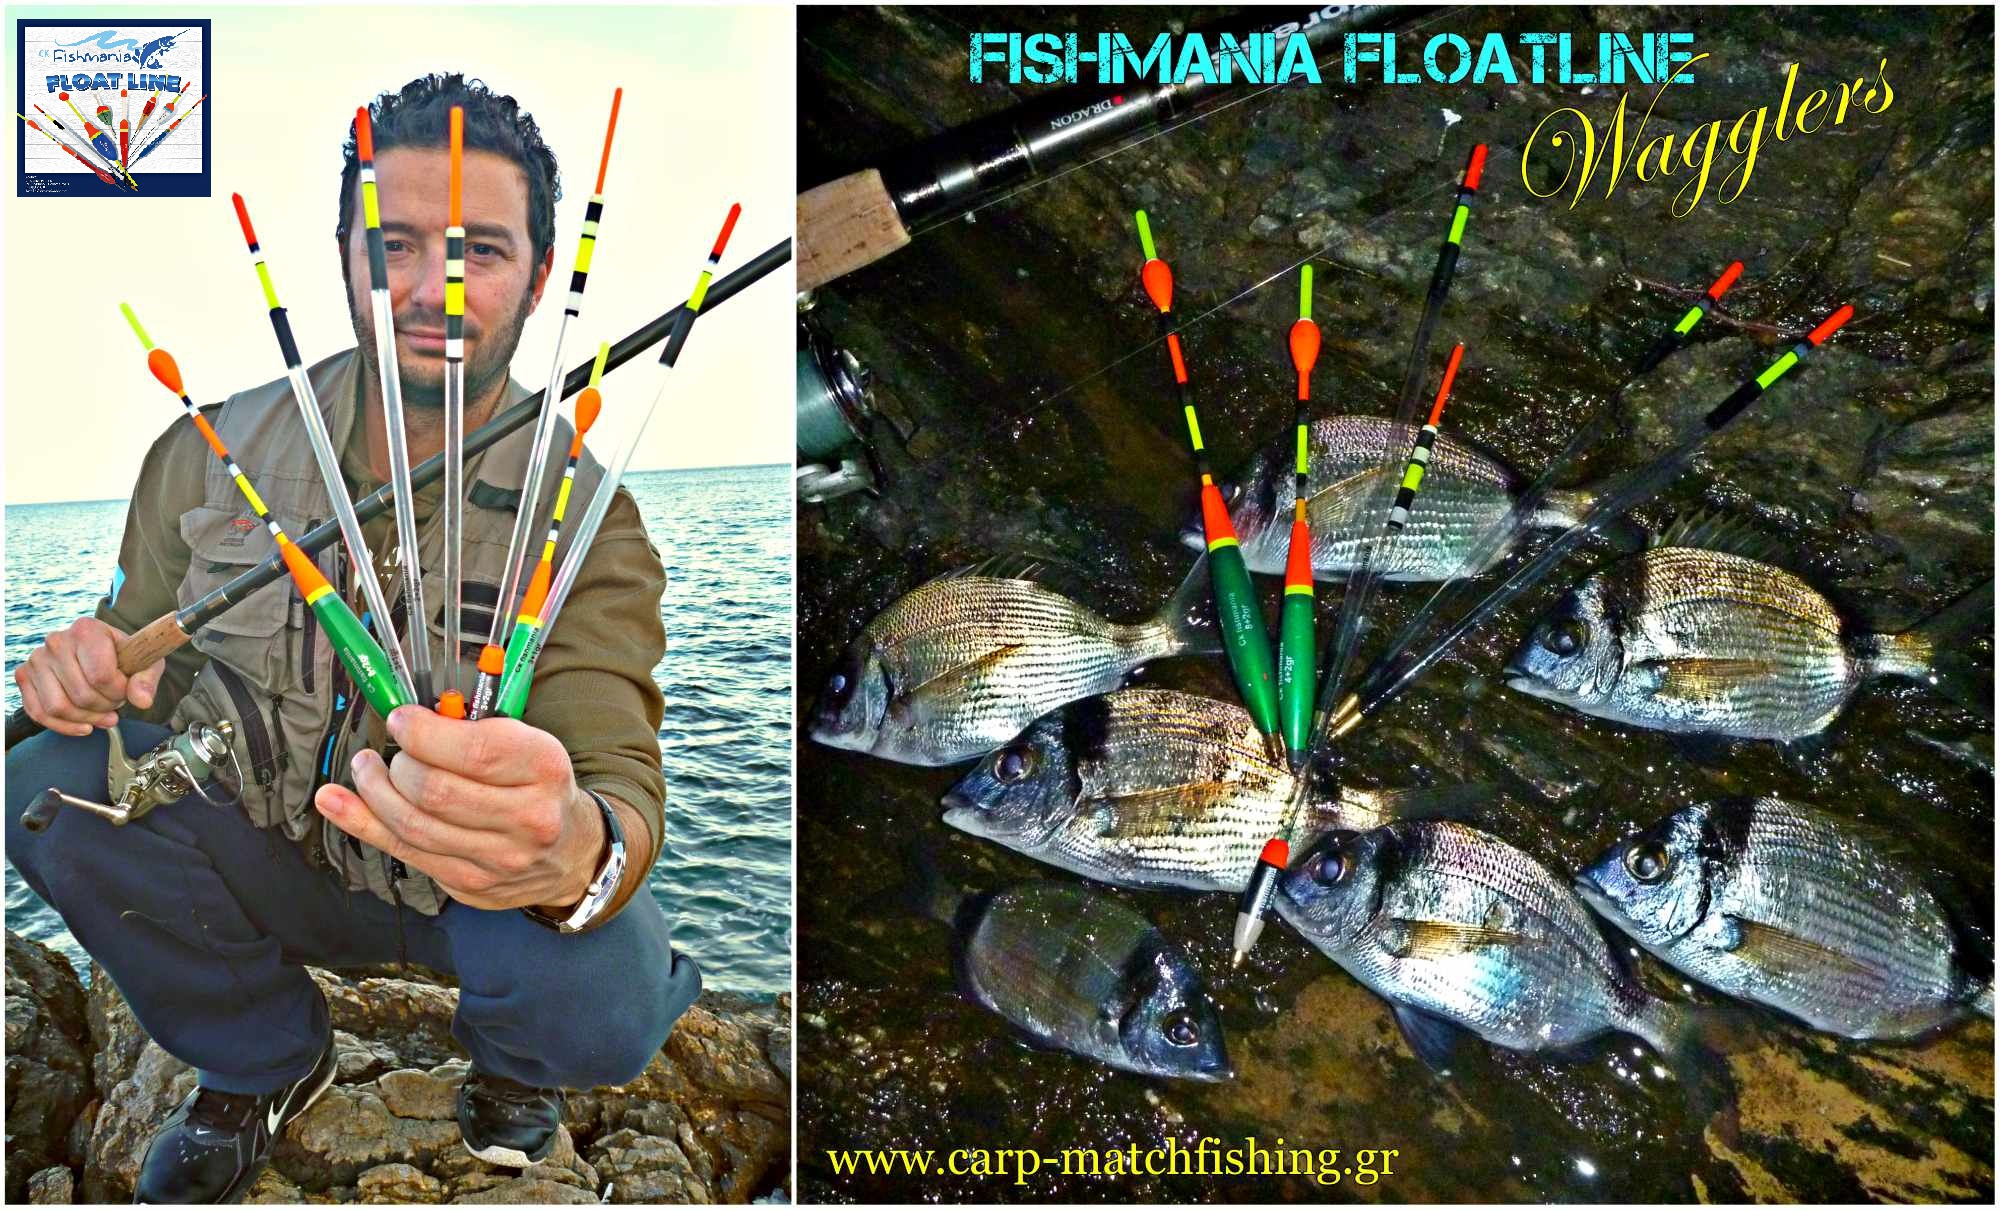 felloi-ds-wagglers-fishmania-floatline-sfaltos-matchfishing-carpmatchfishing